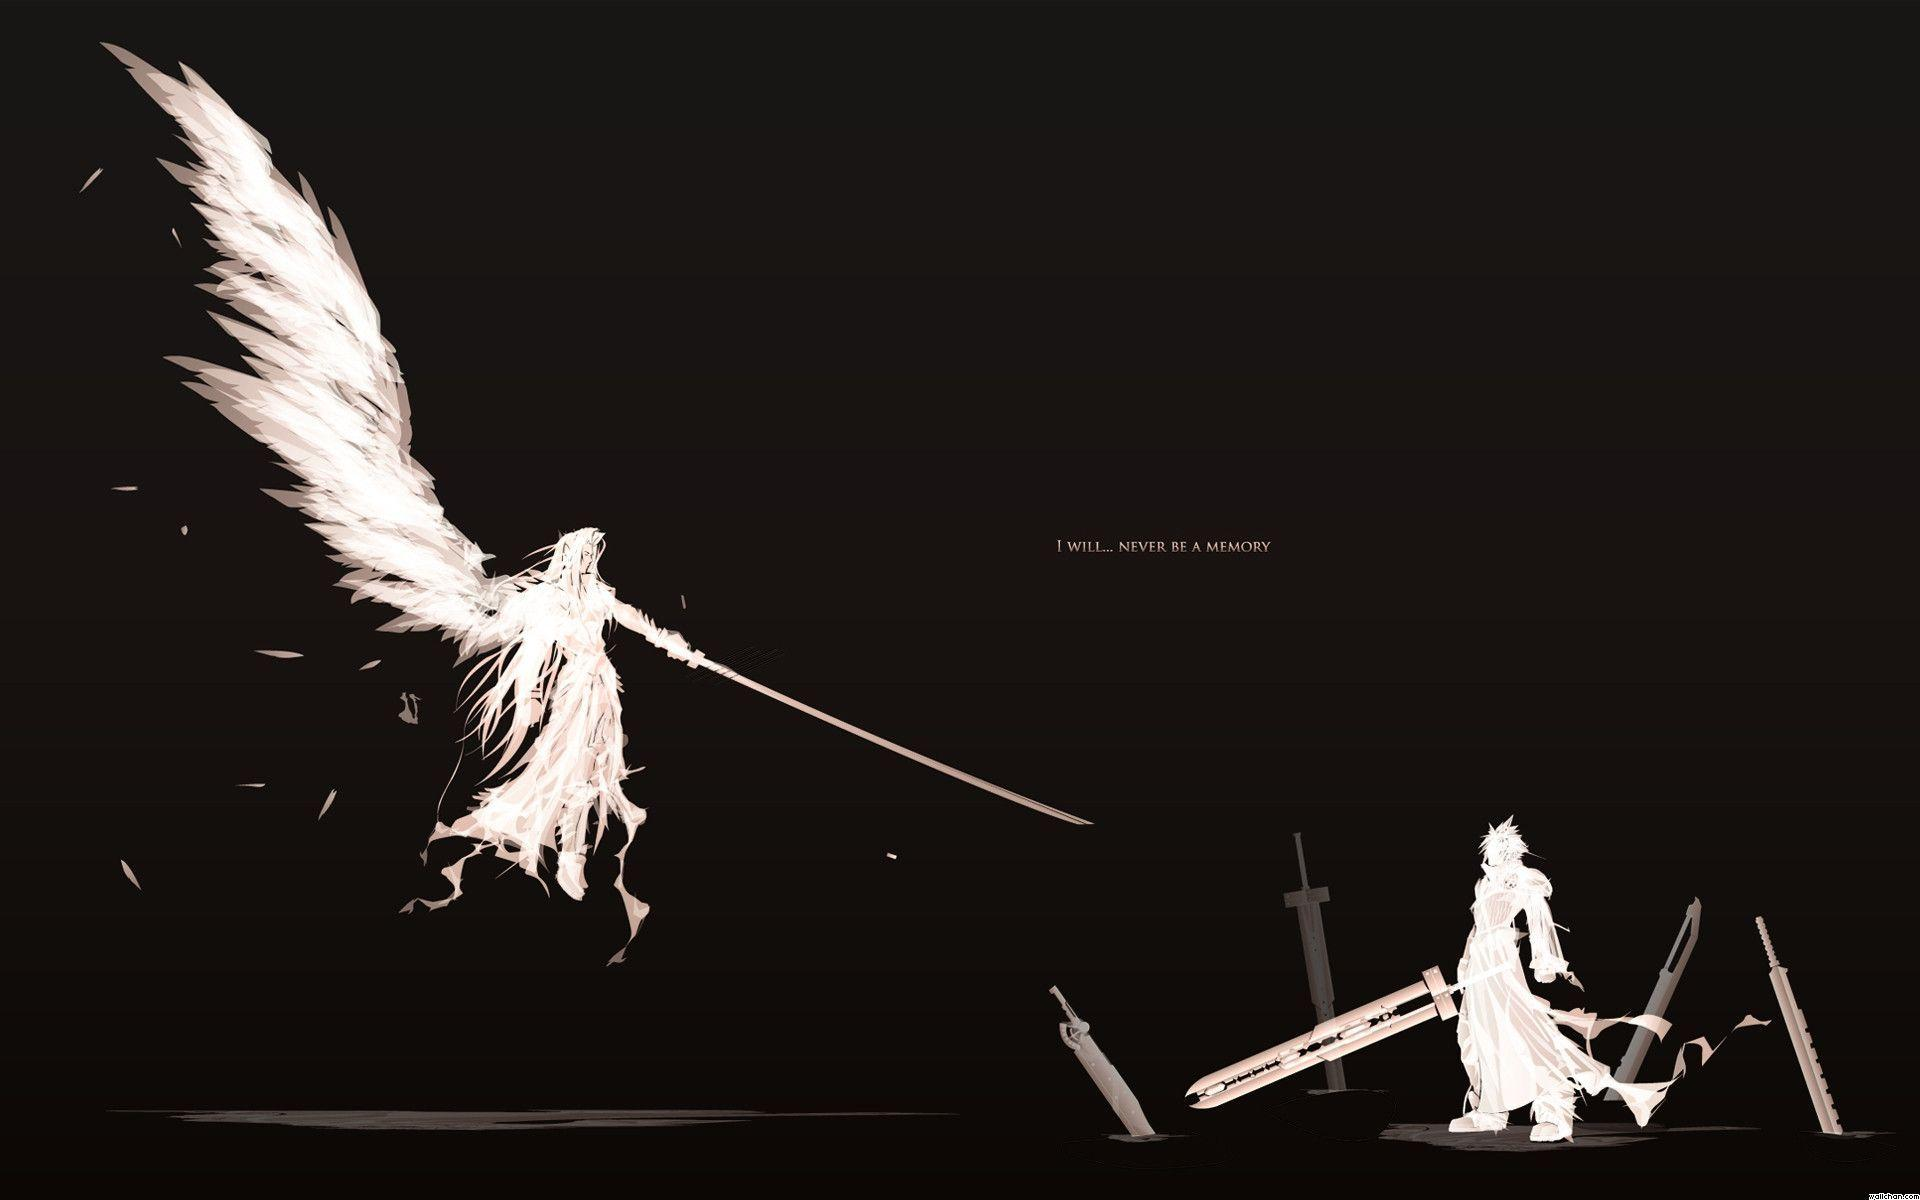 Final Fantasy 7 Sephiroth Wallpapers 1920x1200